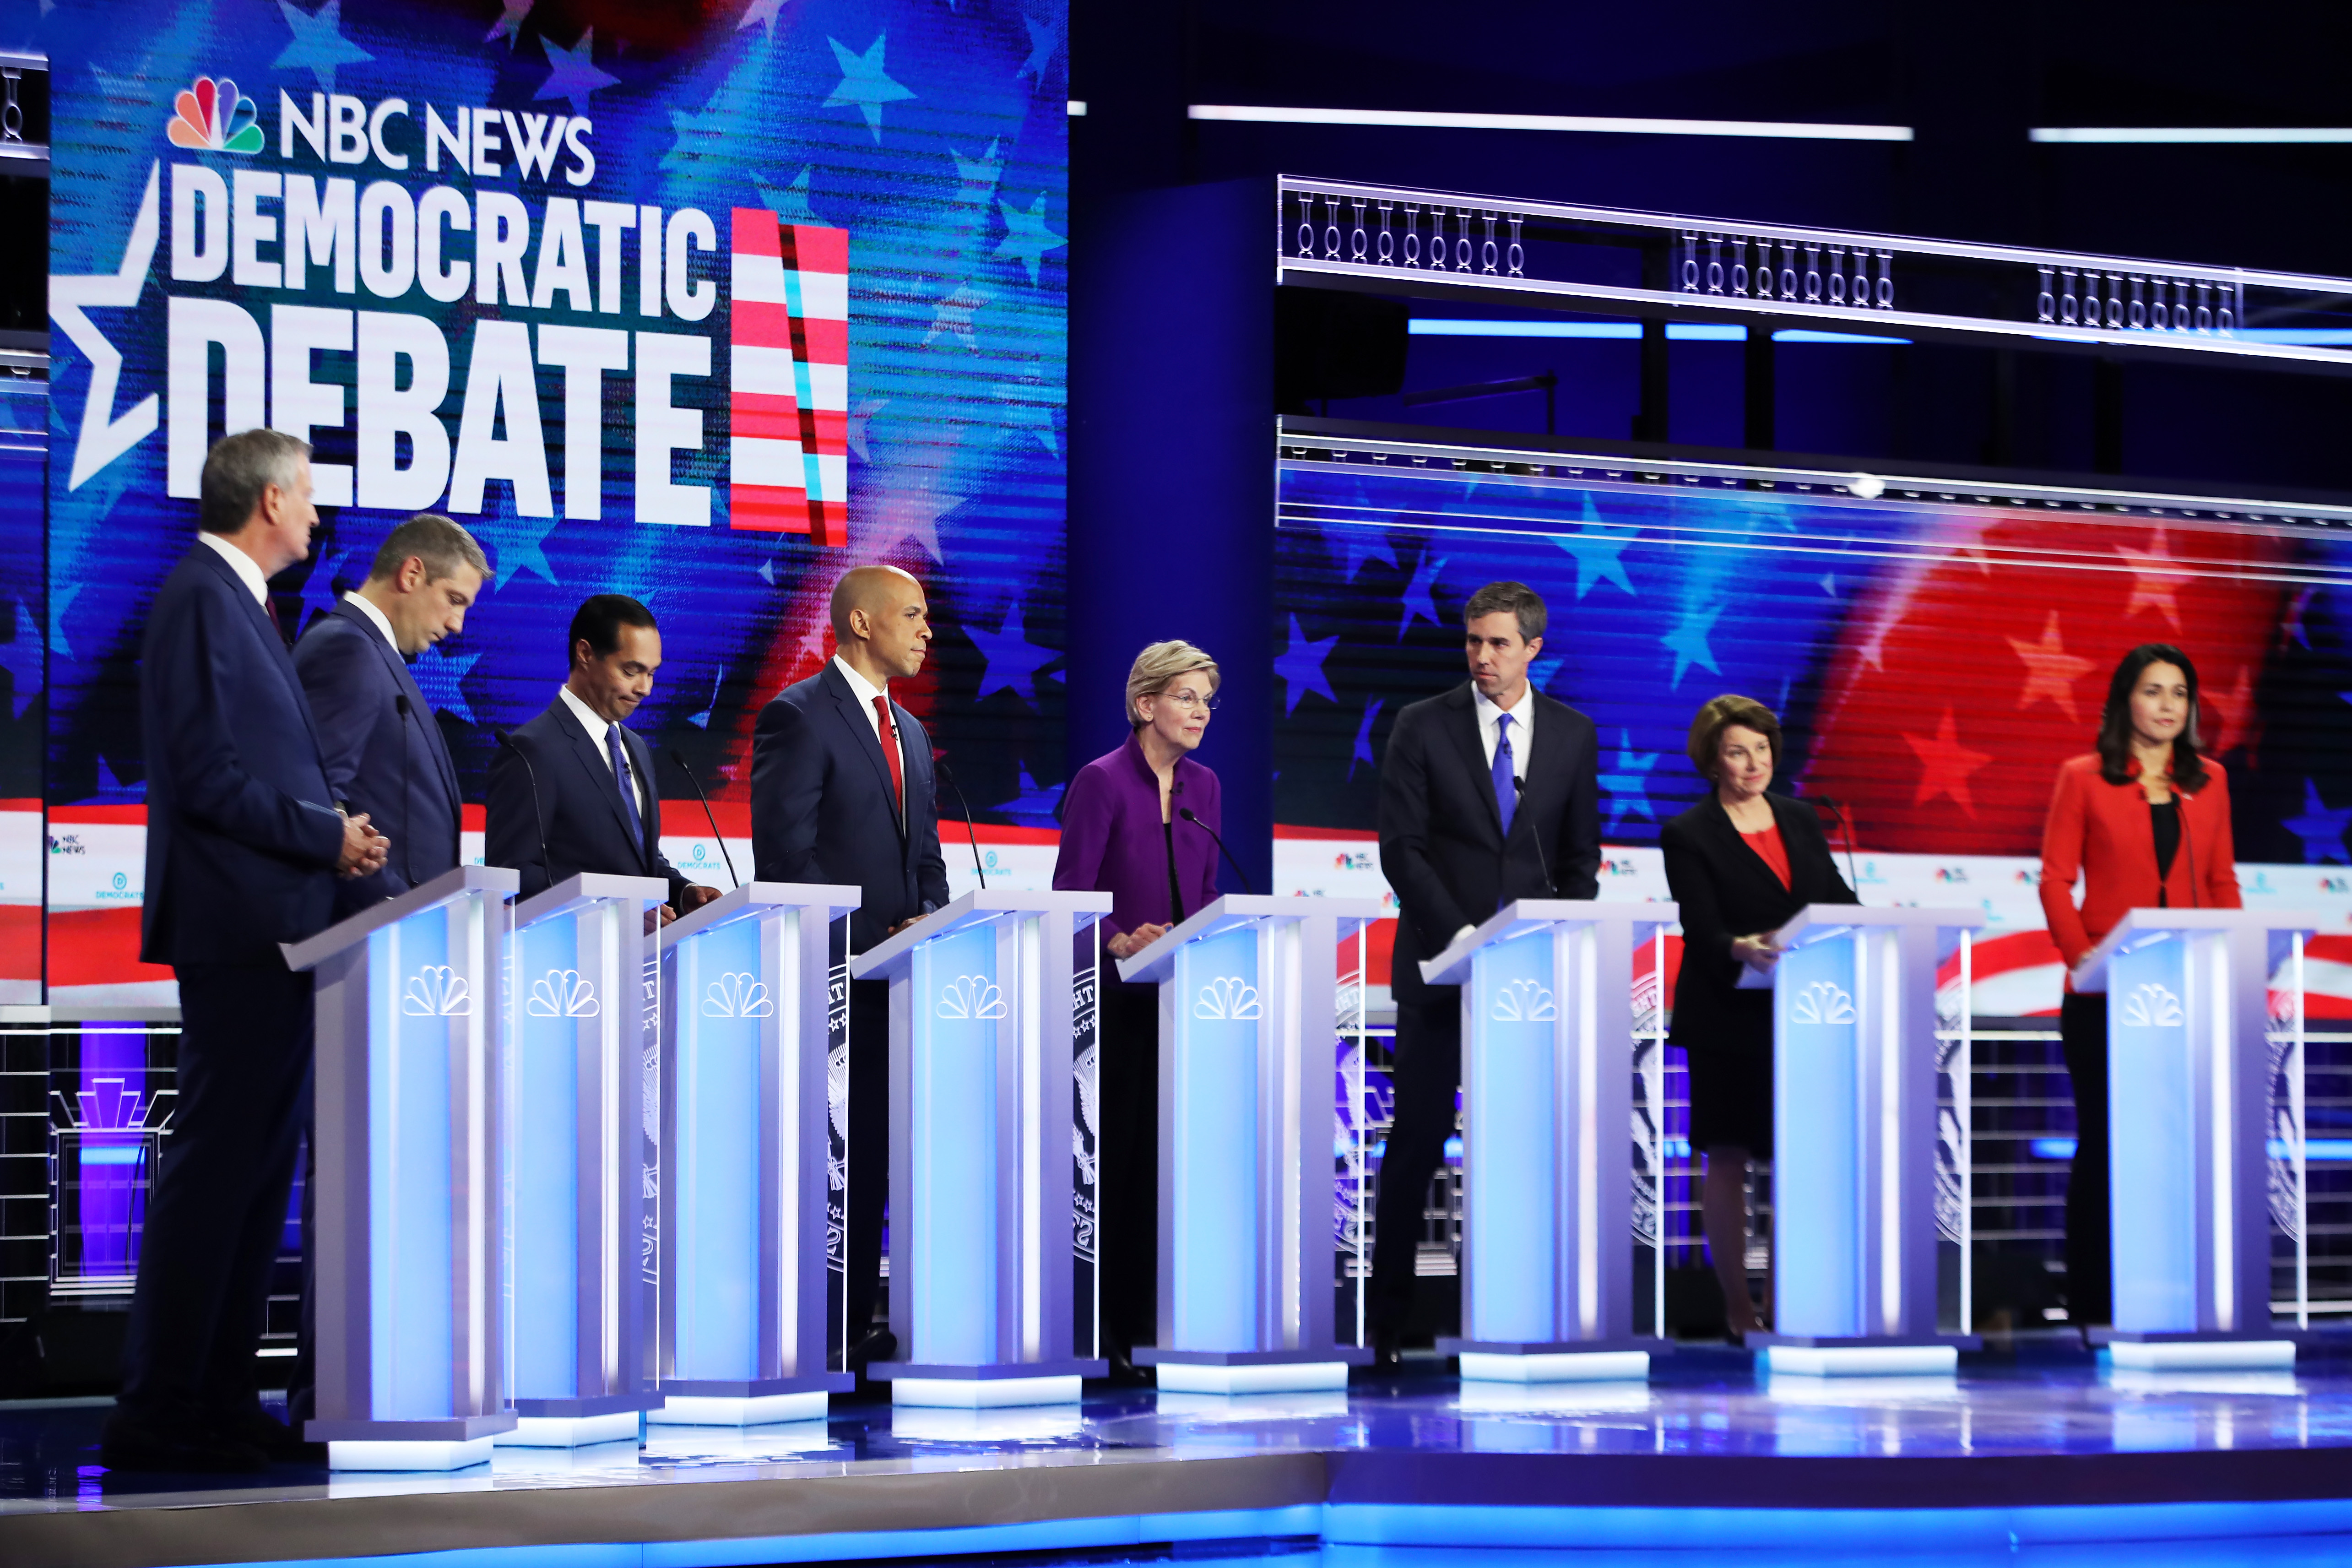 Democratic presidential candidates New York City Mayor Bill De Blasio, Rep. Tim Ryan, former housing secretary Julian Castro, Sen. Cory Booker, Sen. Elizabeth Warren, former Texas congressman Beto O'Rourke, Sen. Amy Klobuchar and Rep. Tulsi Gabbard face off in the first Democrats presidential debate on June 26, 2019 in Miami, Florida.